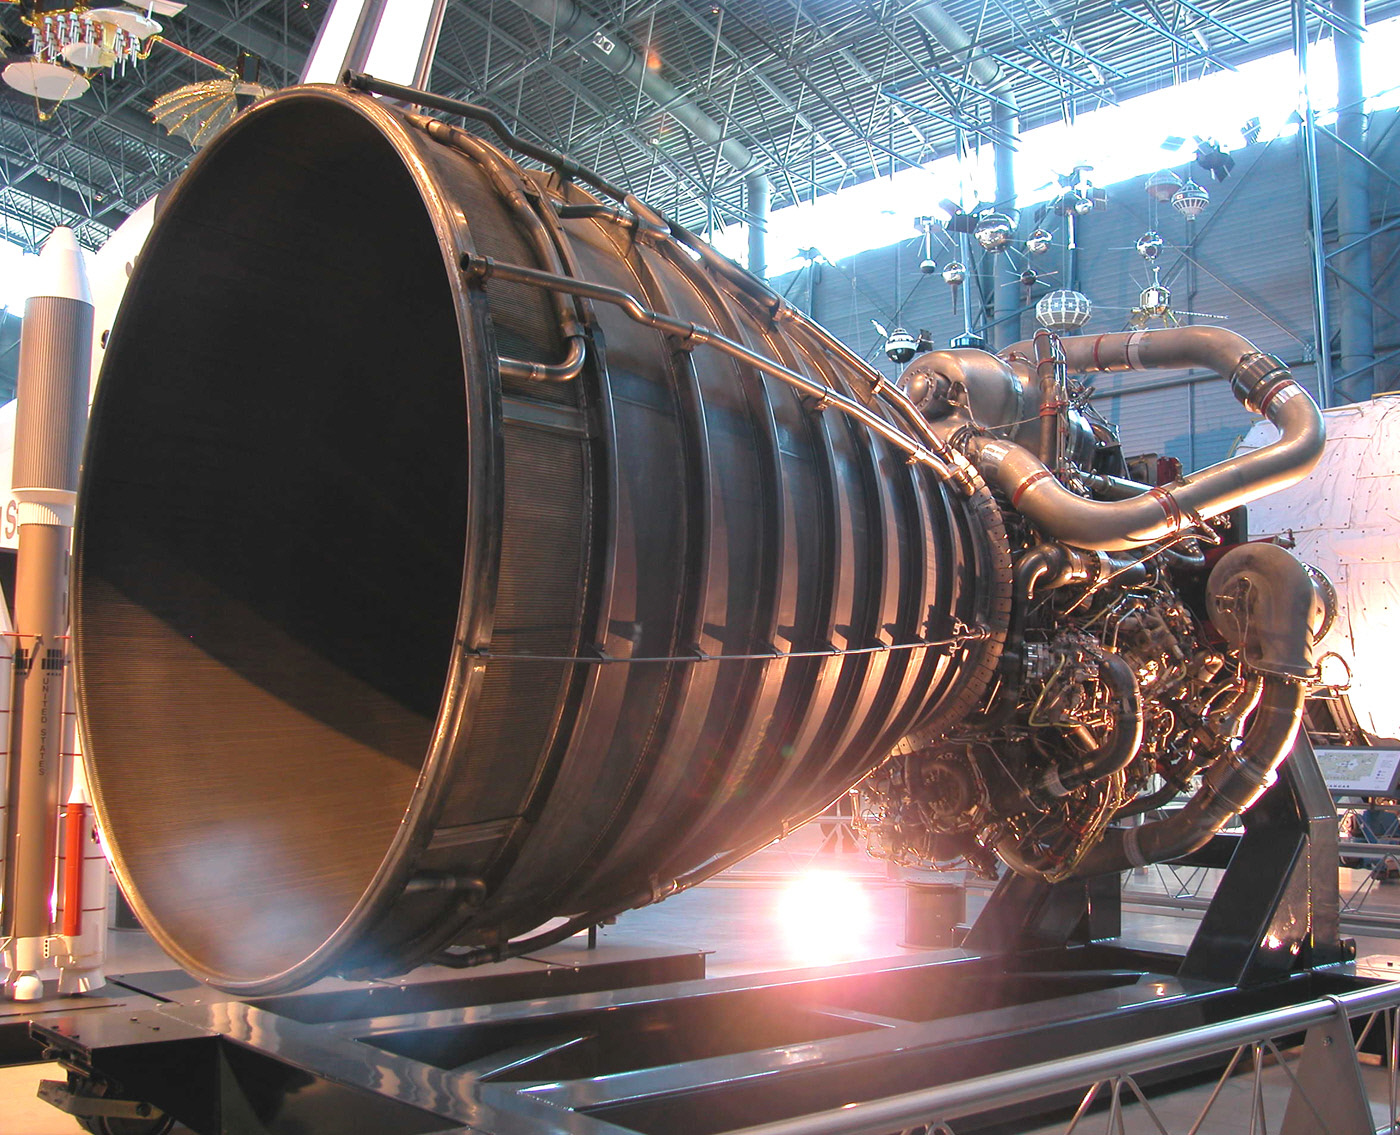 space shuttle engine - photo #5